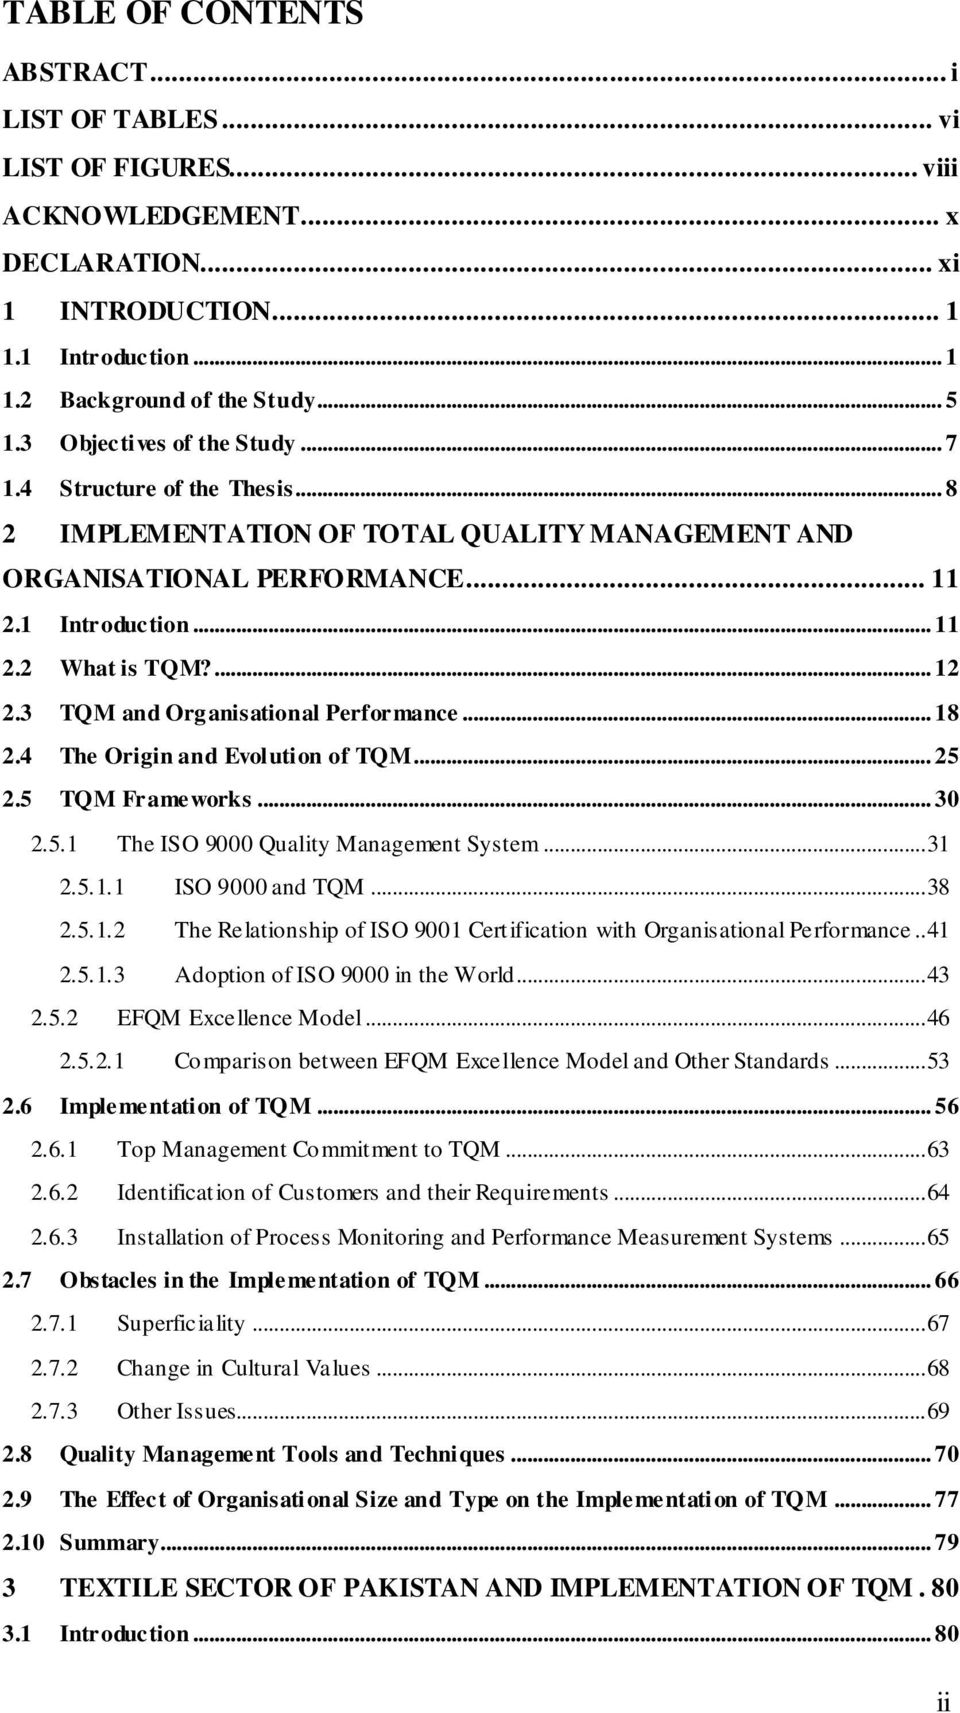 3 TQM and Organisational Performance... 18 2.4 The Origin and Evolution of TQM... 25 2.5 TQM Frameworks... 30 2.5.1 The ISO 9000 Quality Management System... 31 2.5.1.1 ISO 9000 and TQM... 38 2.5.1.2 The Relationship of ISO 9001 Certification with Organisational Performance.